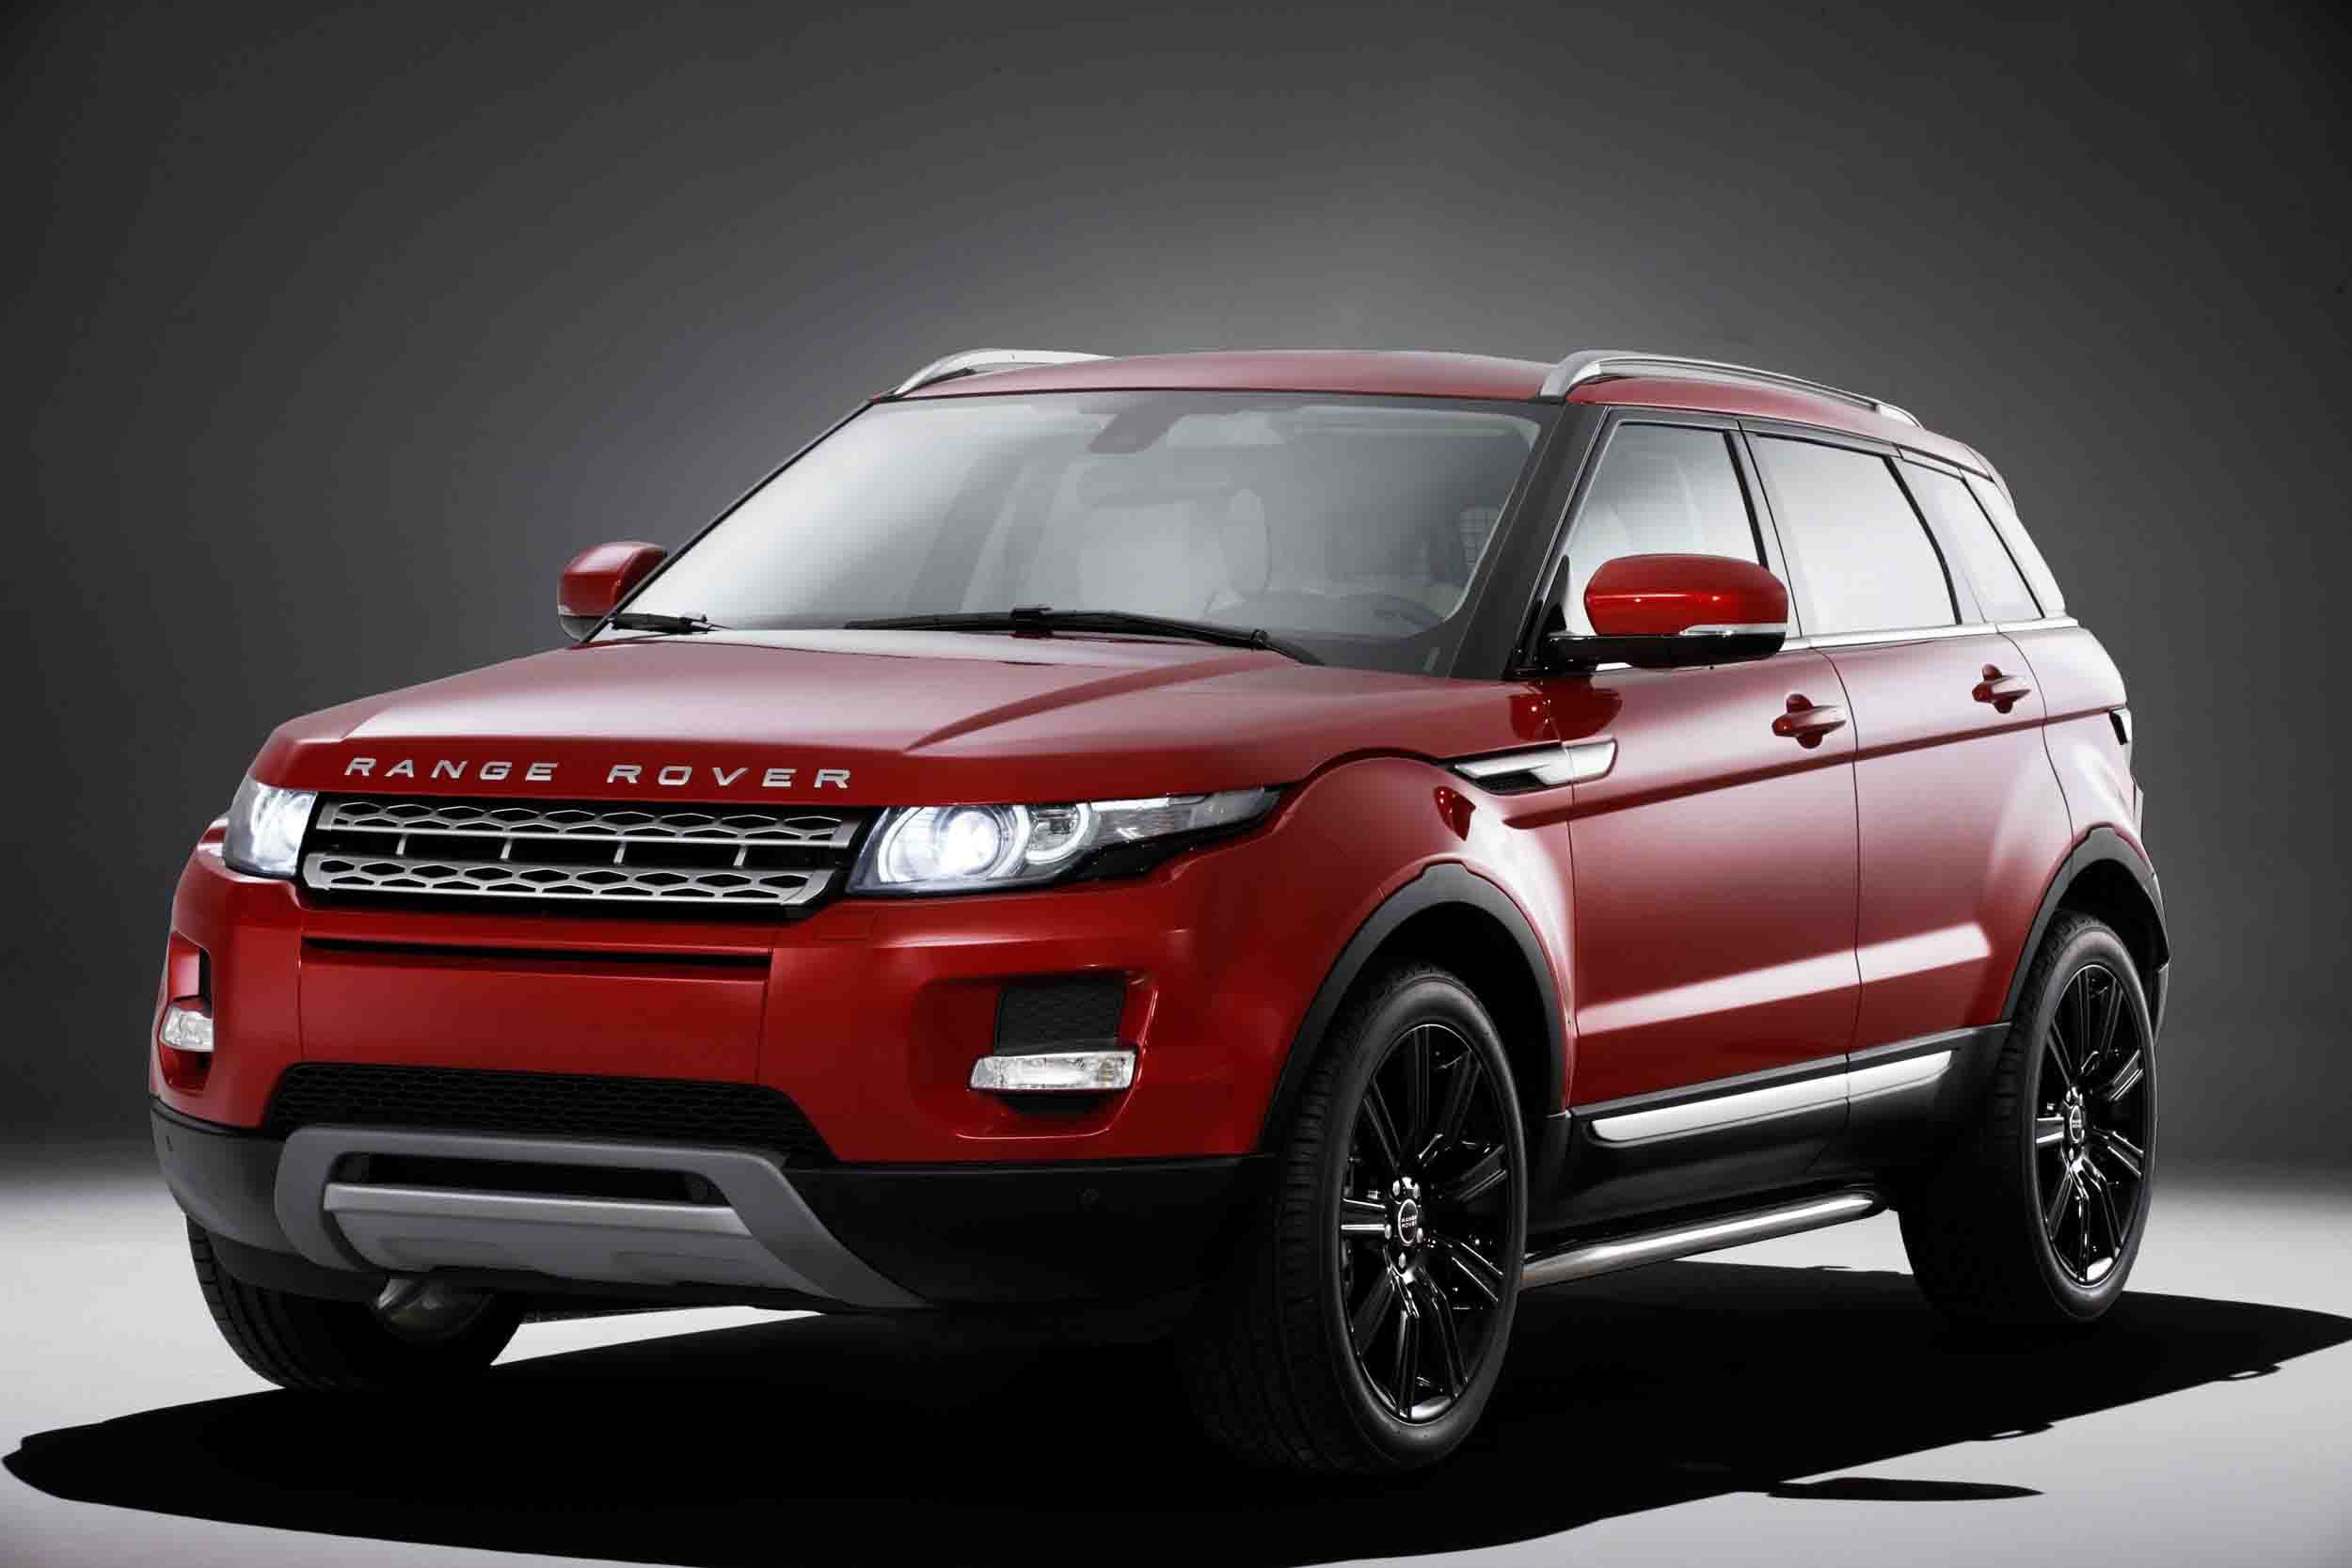 land rover cars prices reviews new land rover cars in india specs news. Black Bedroom Furniture Sets. Home Design Ideas